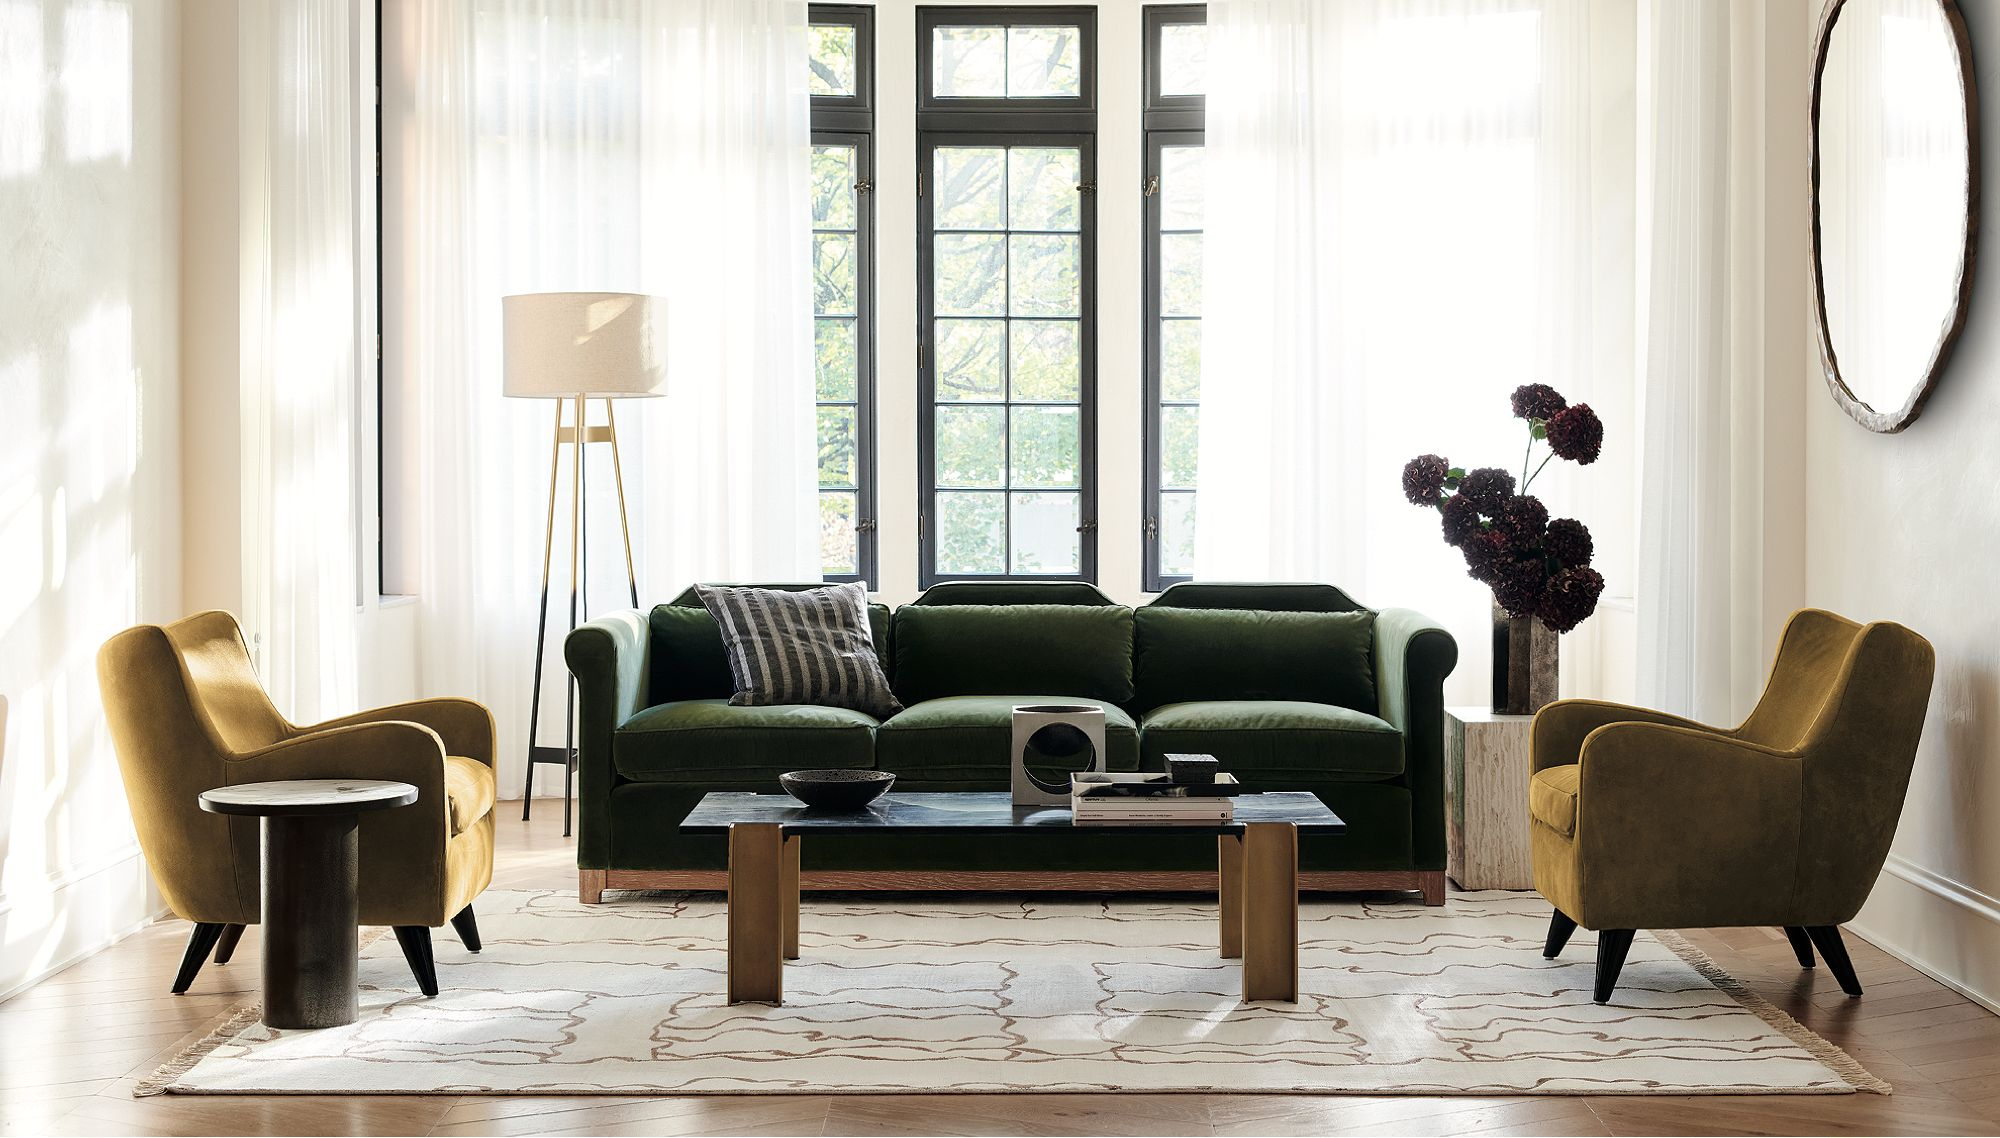 Living room with a dark green couch, two ochre accent chairs and a low coffee table in the center